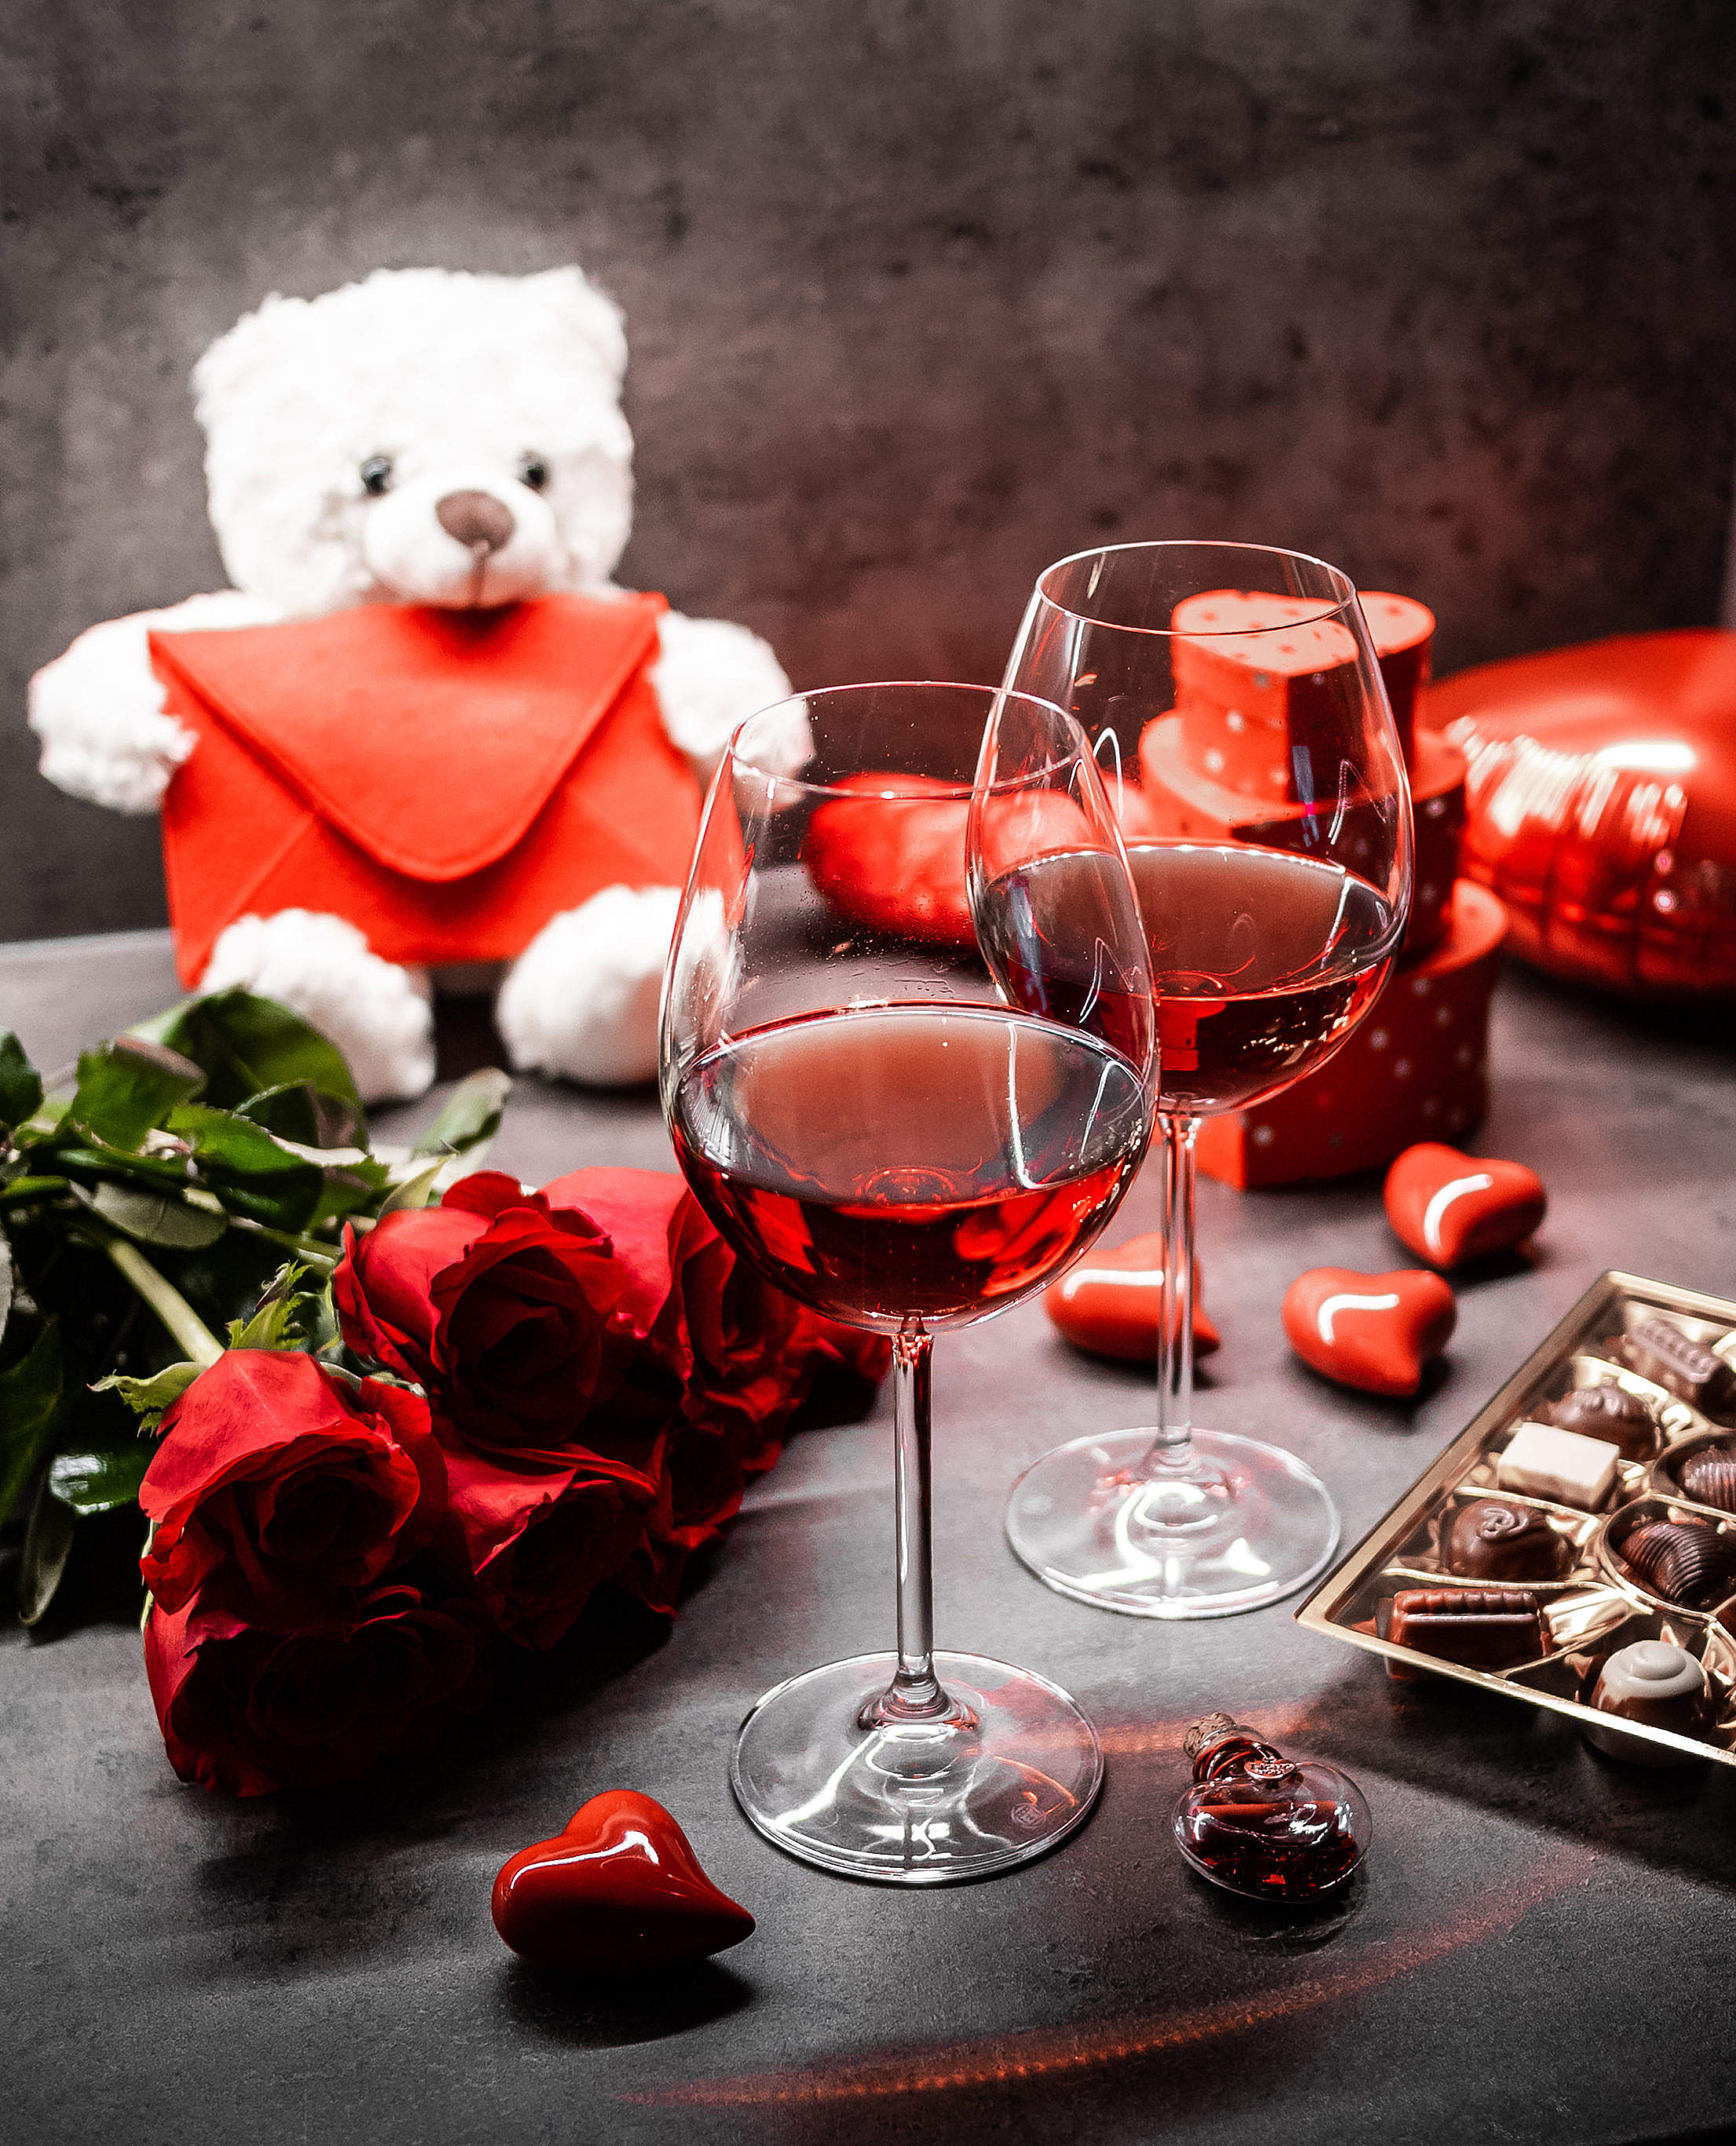 Download Romantic Date Night Free Stock Photo